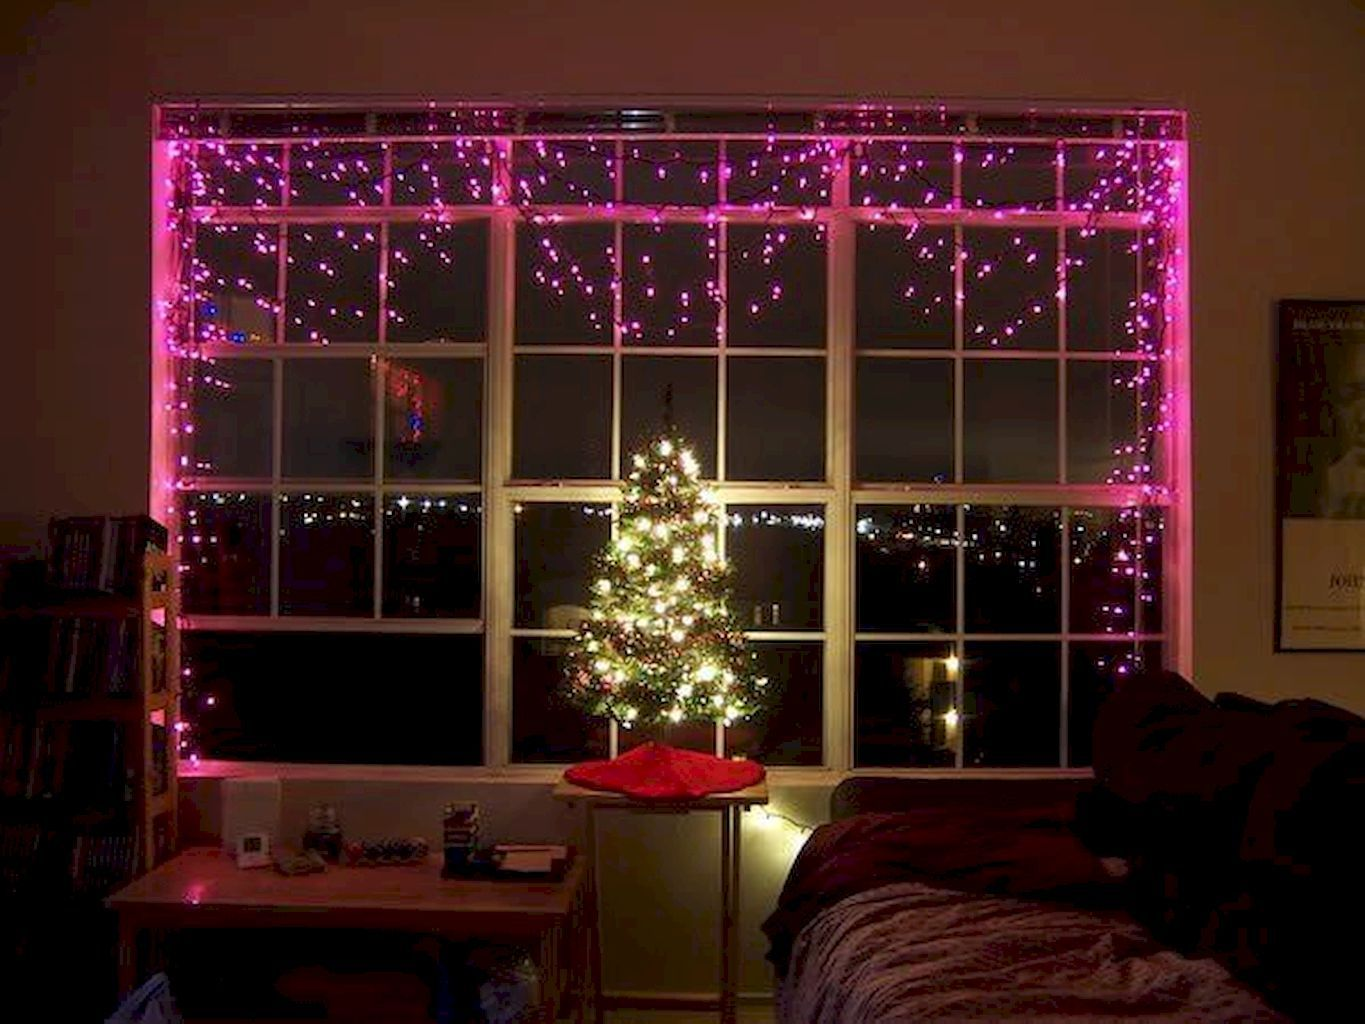 Christmas lights inside decorating with window decorations also modern indoor decoration ideas interior and rh pinterest